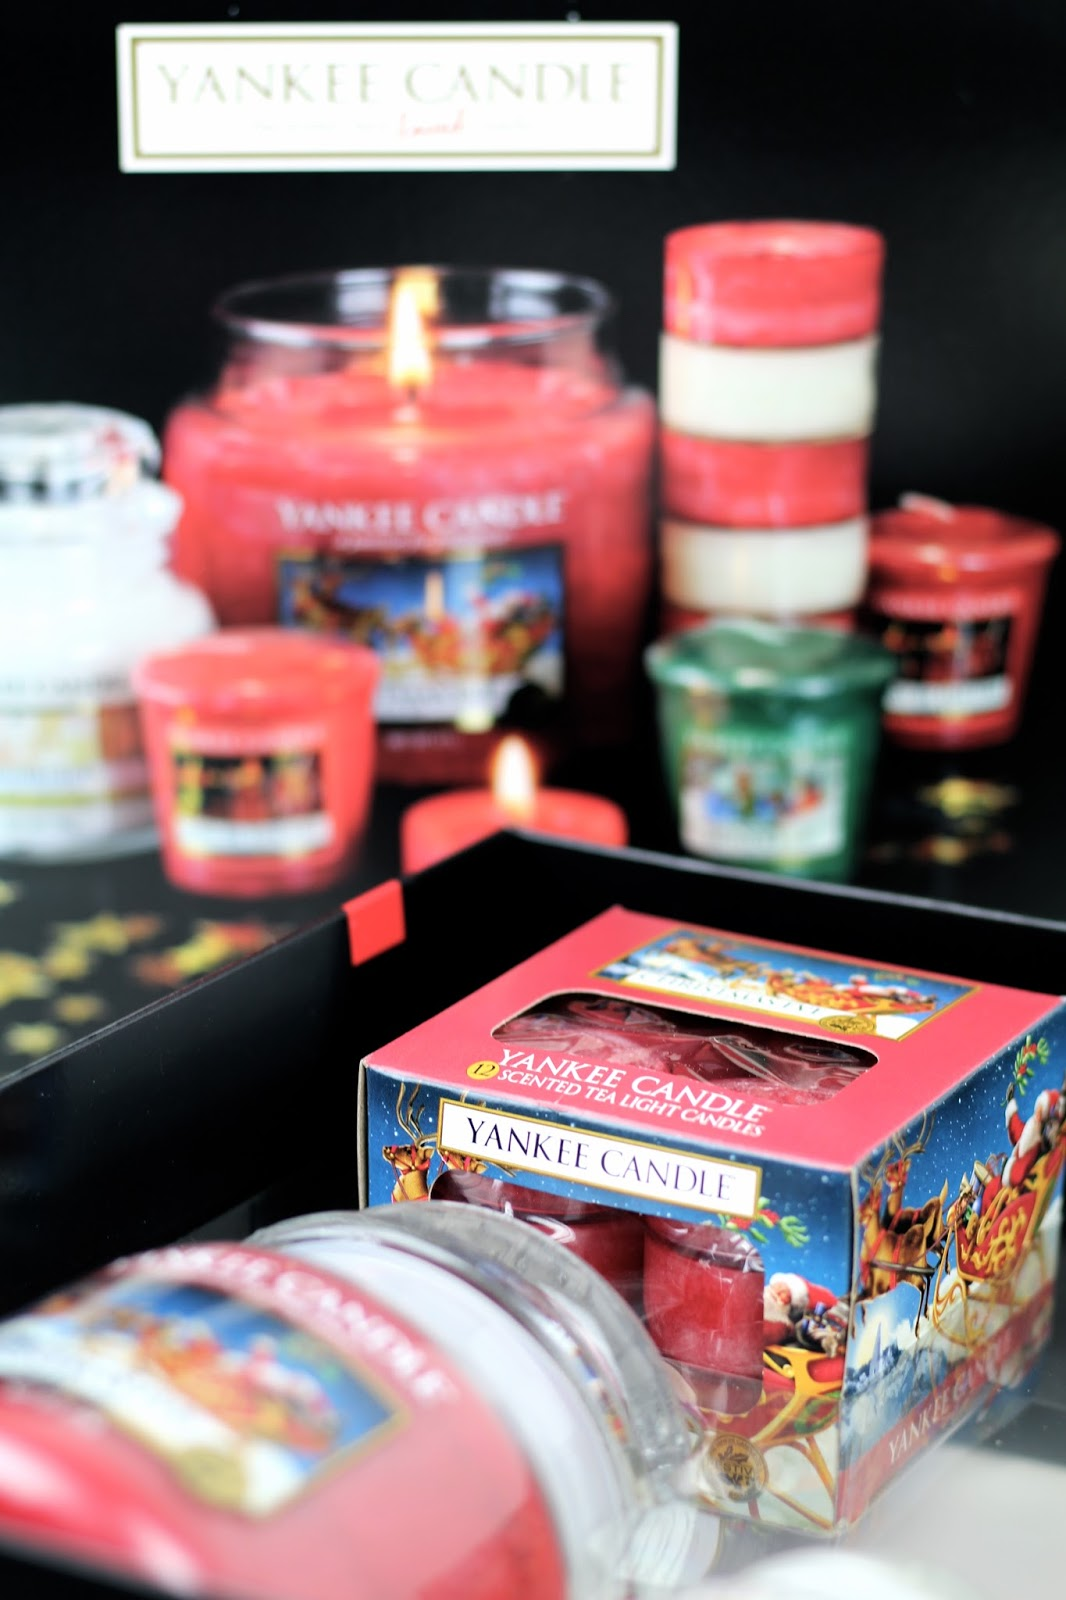 Christmas candle gift box by Yankee Candle 2016